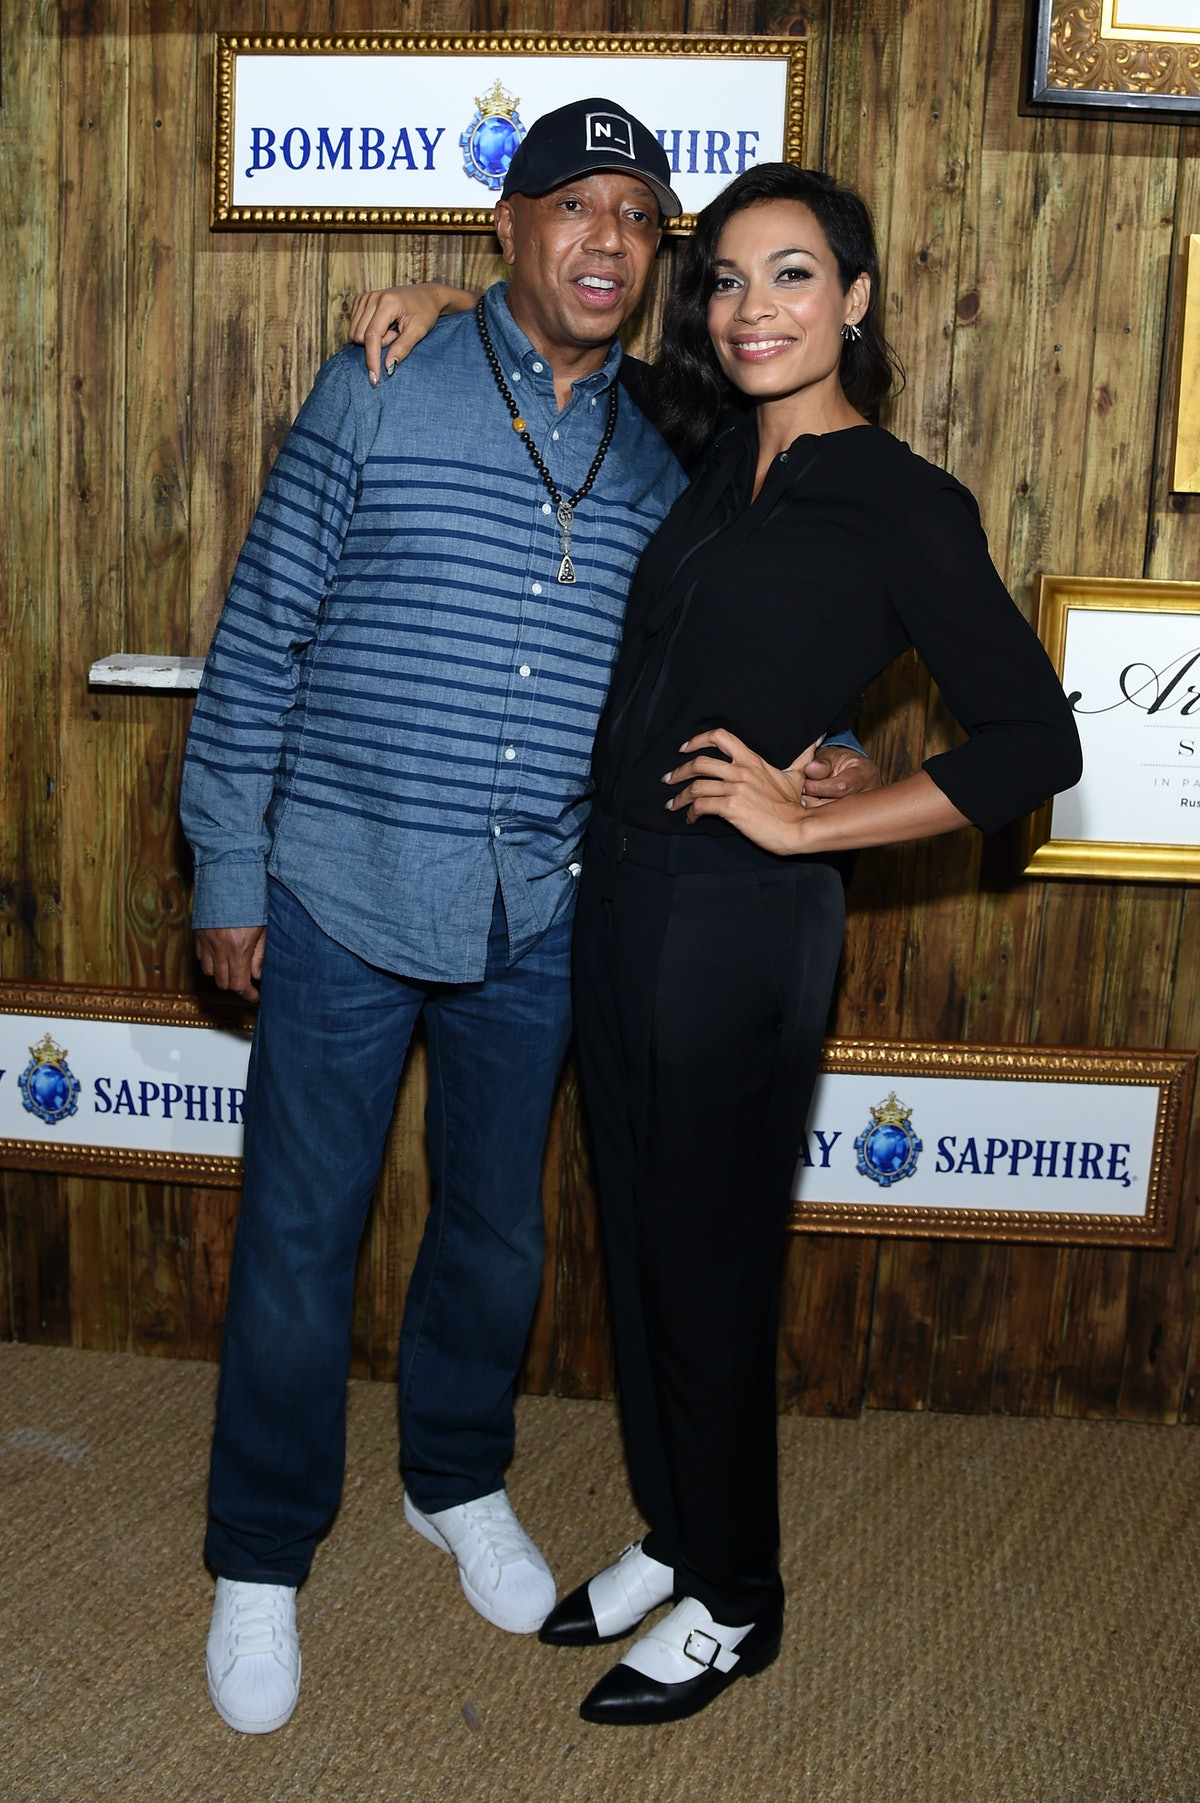 Russell Simmons and Rosario Dawson attend the 5th Annual Bombay Sapphire Artisan Series Finale at th...